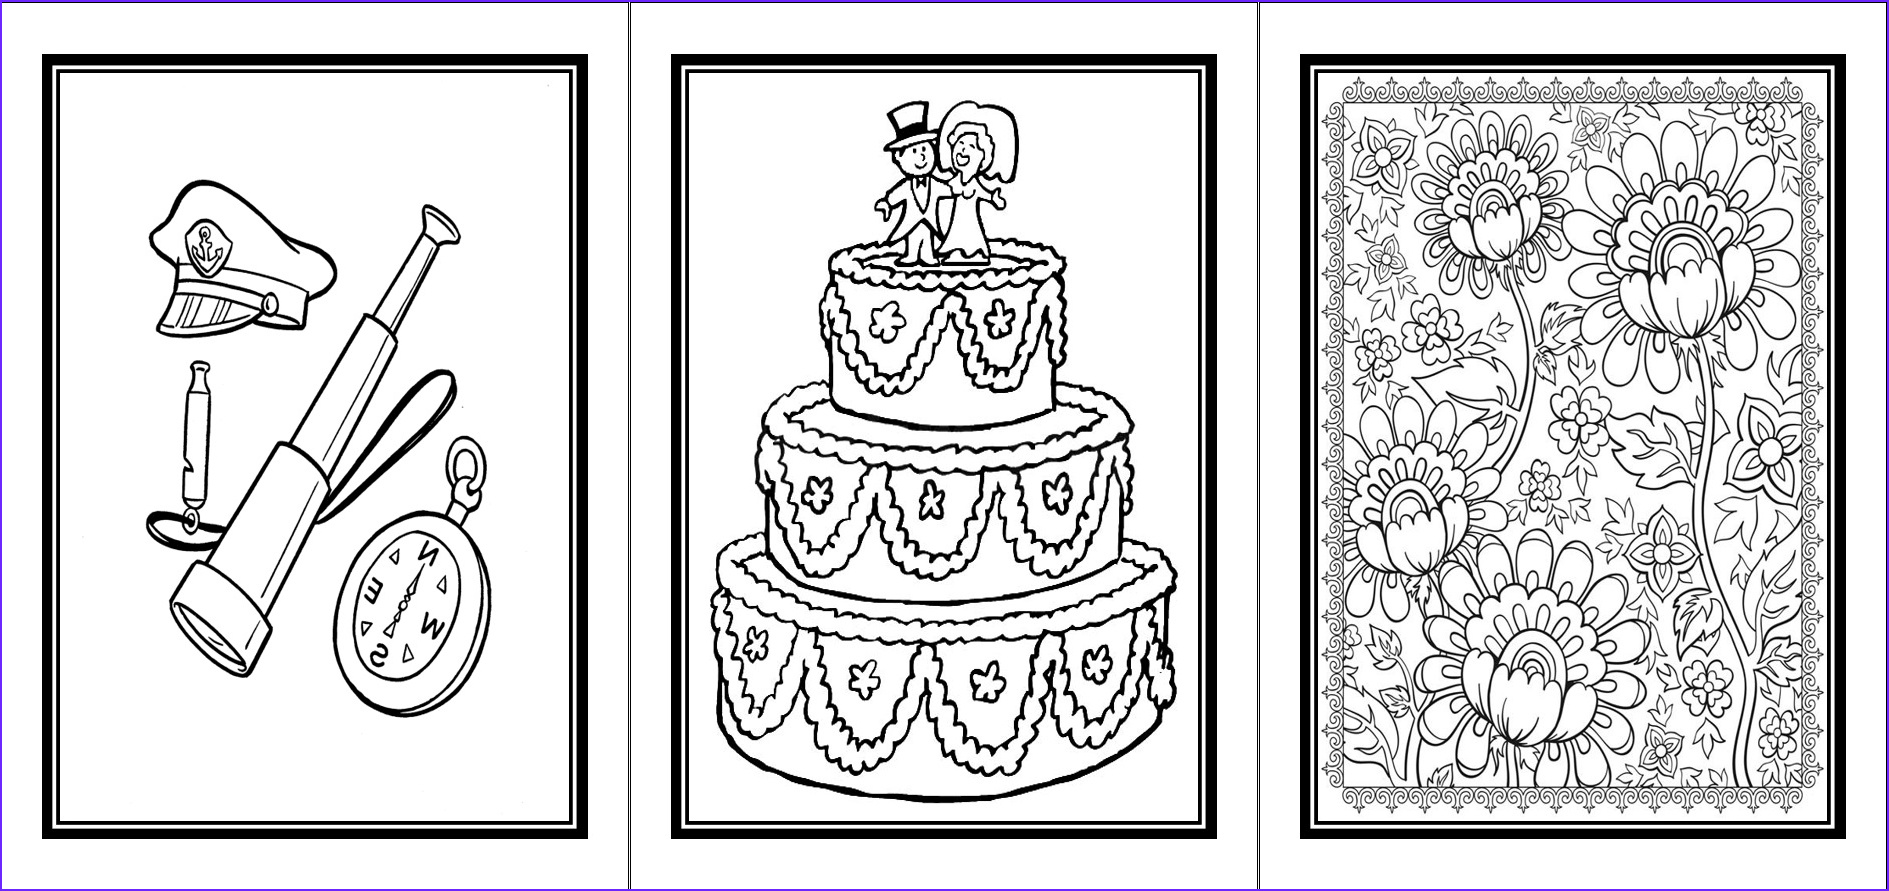 Dementia Coloring Book New Gallery Colouring Book Dementia Arts and Crafts